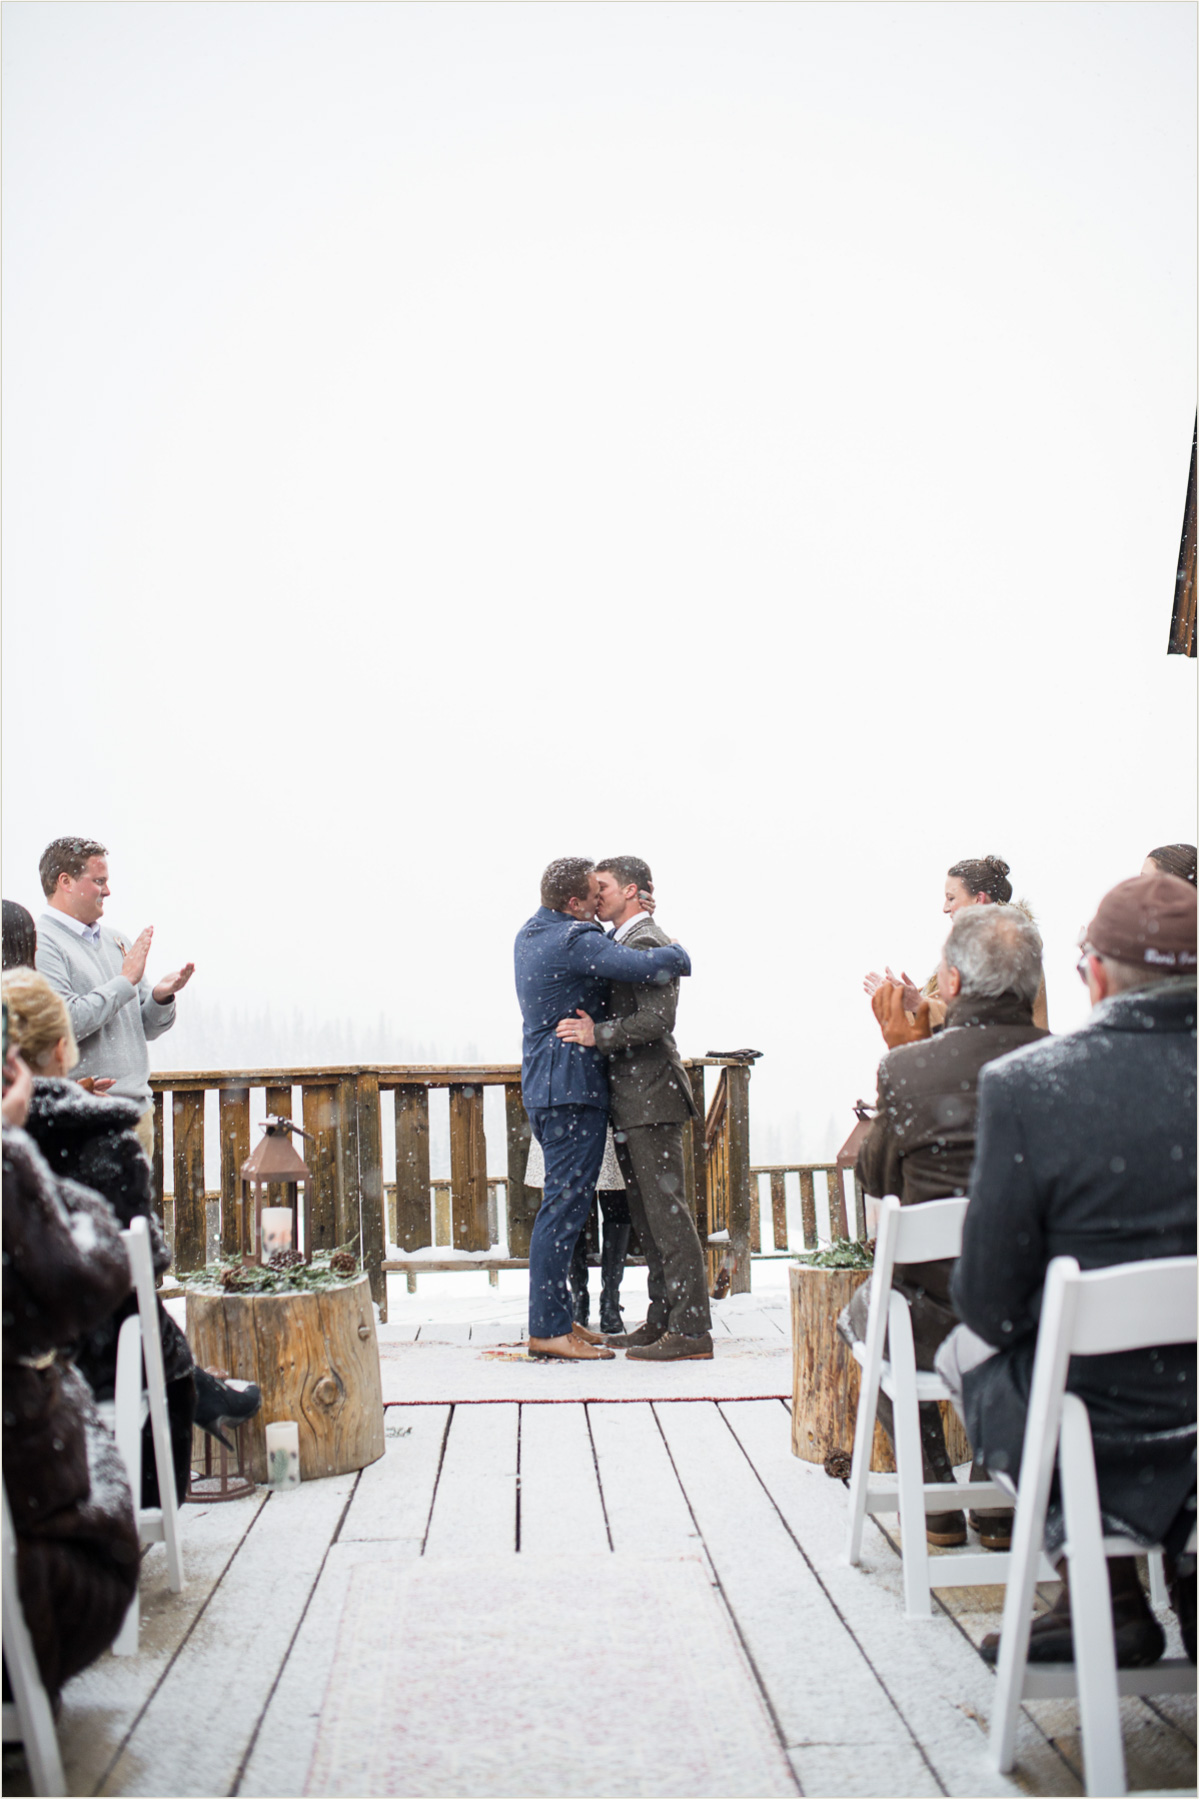 Winter Gay Ski Lodge Wedding at Gorrono Ranch Telluride Ski Resort